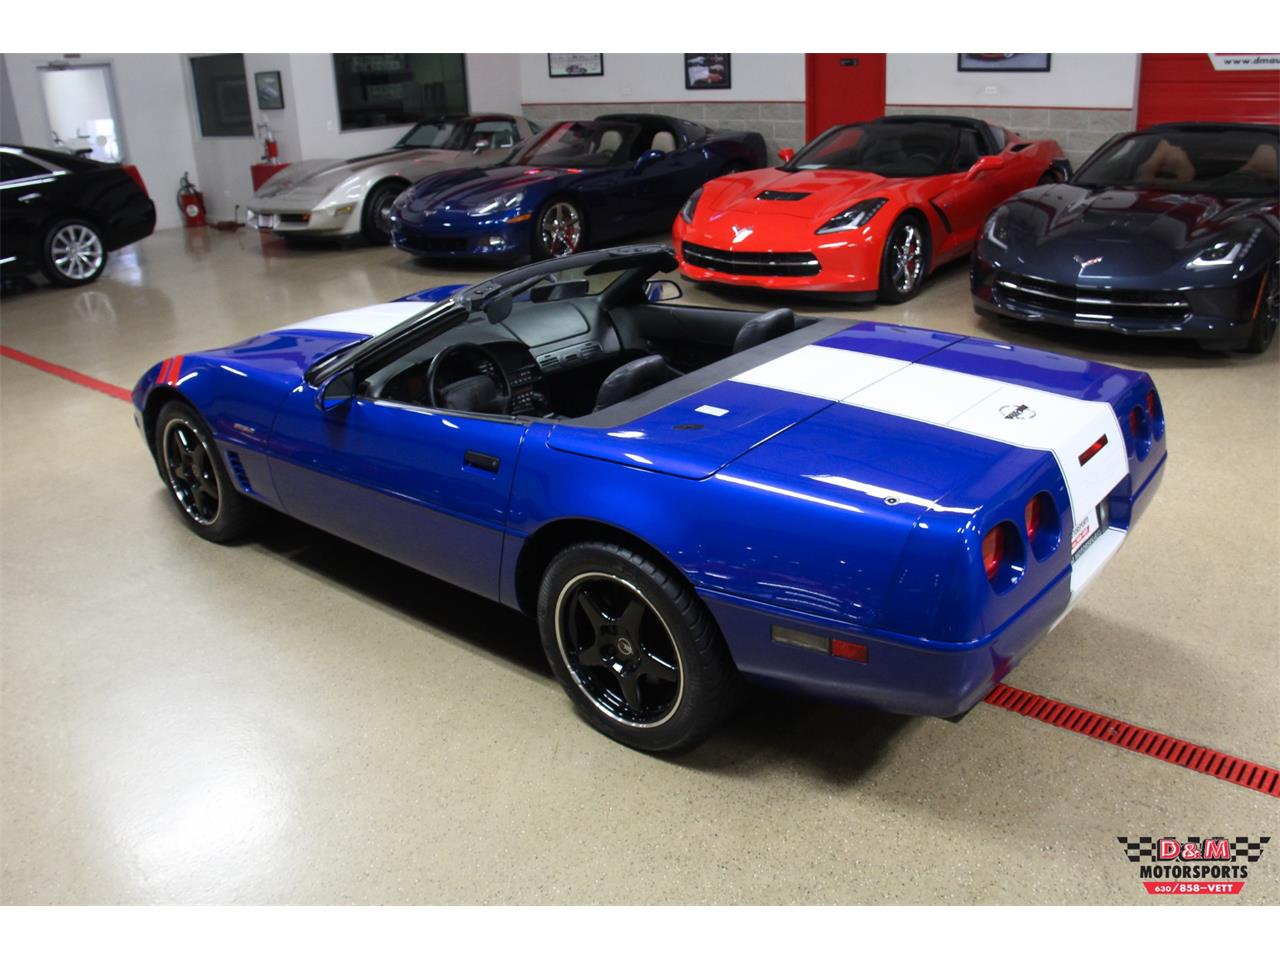 Large Picture of '96 Corvette located in Glen Ellyn Illinois - $44,995.00 - LV9Z